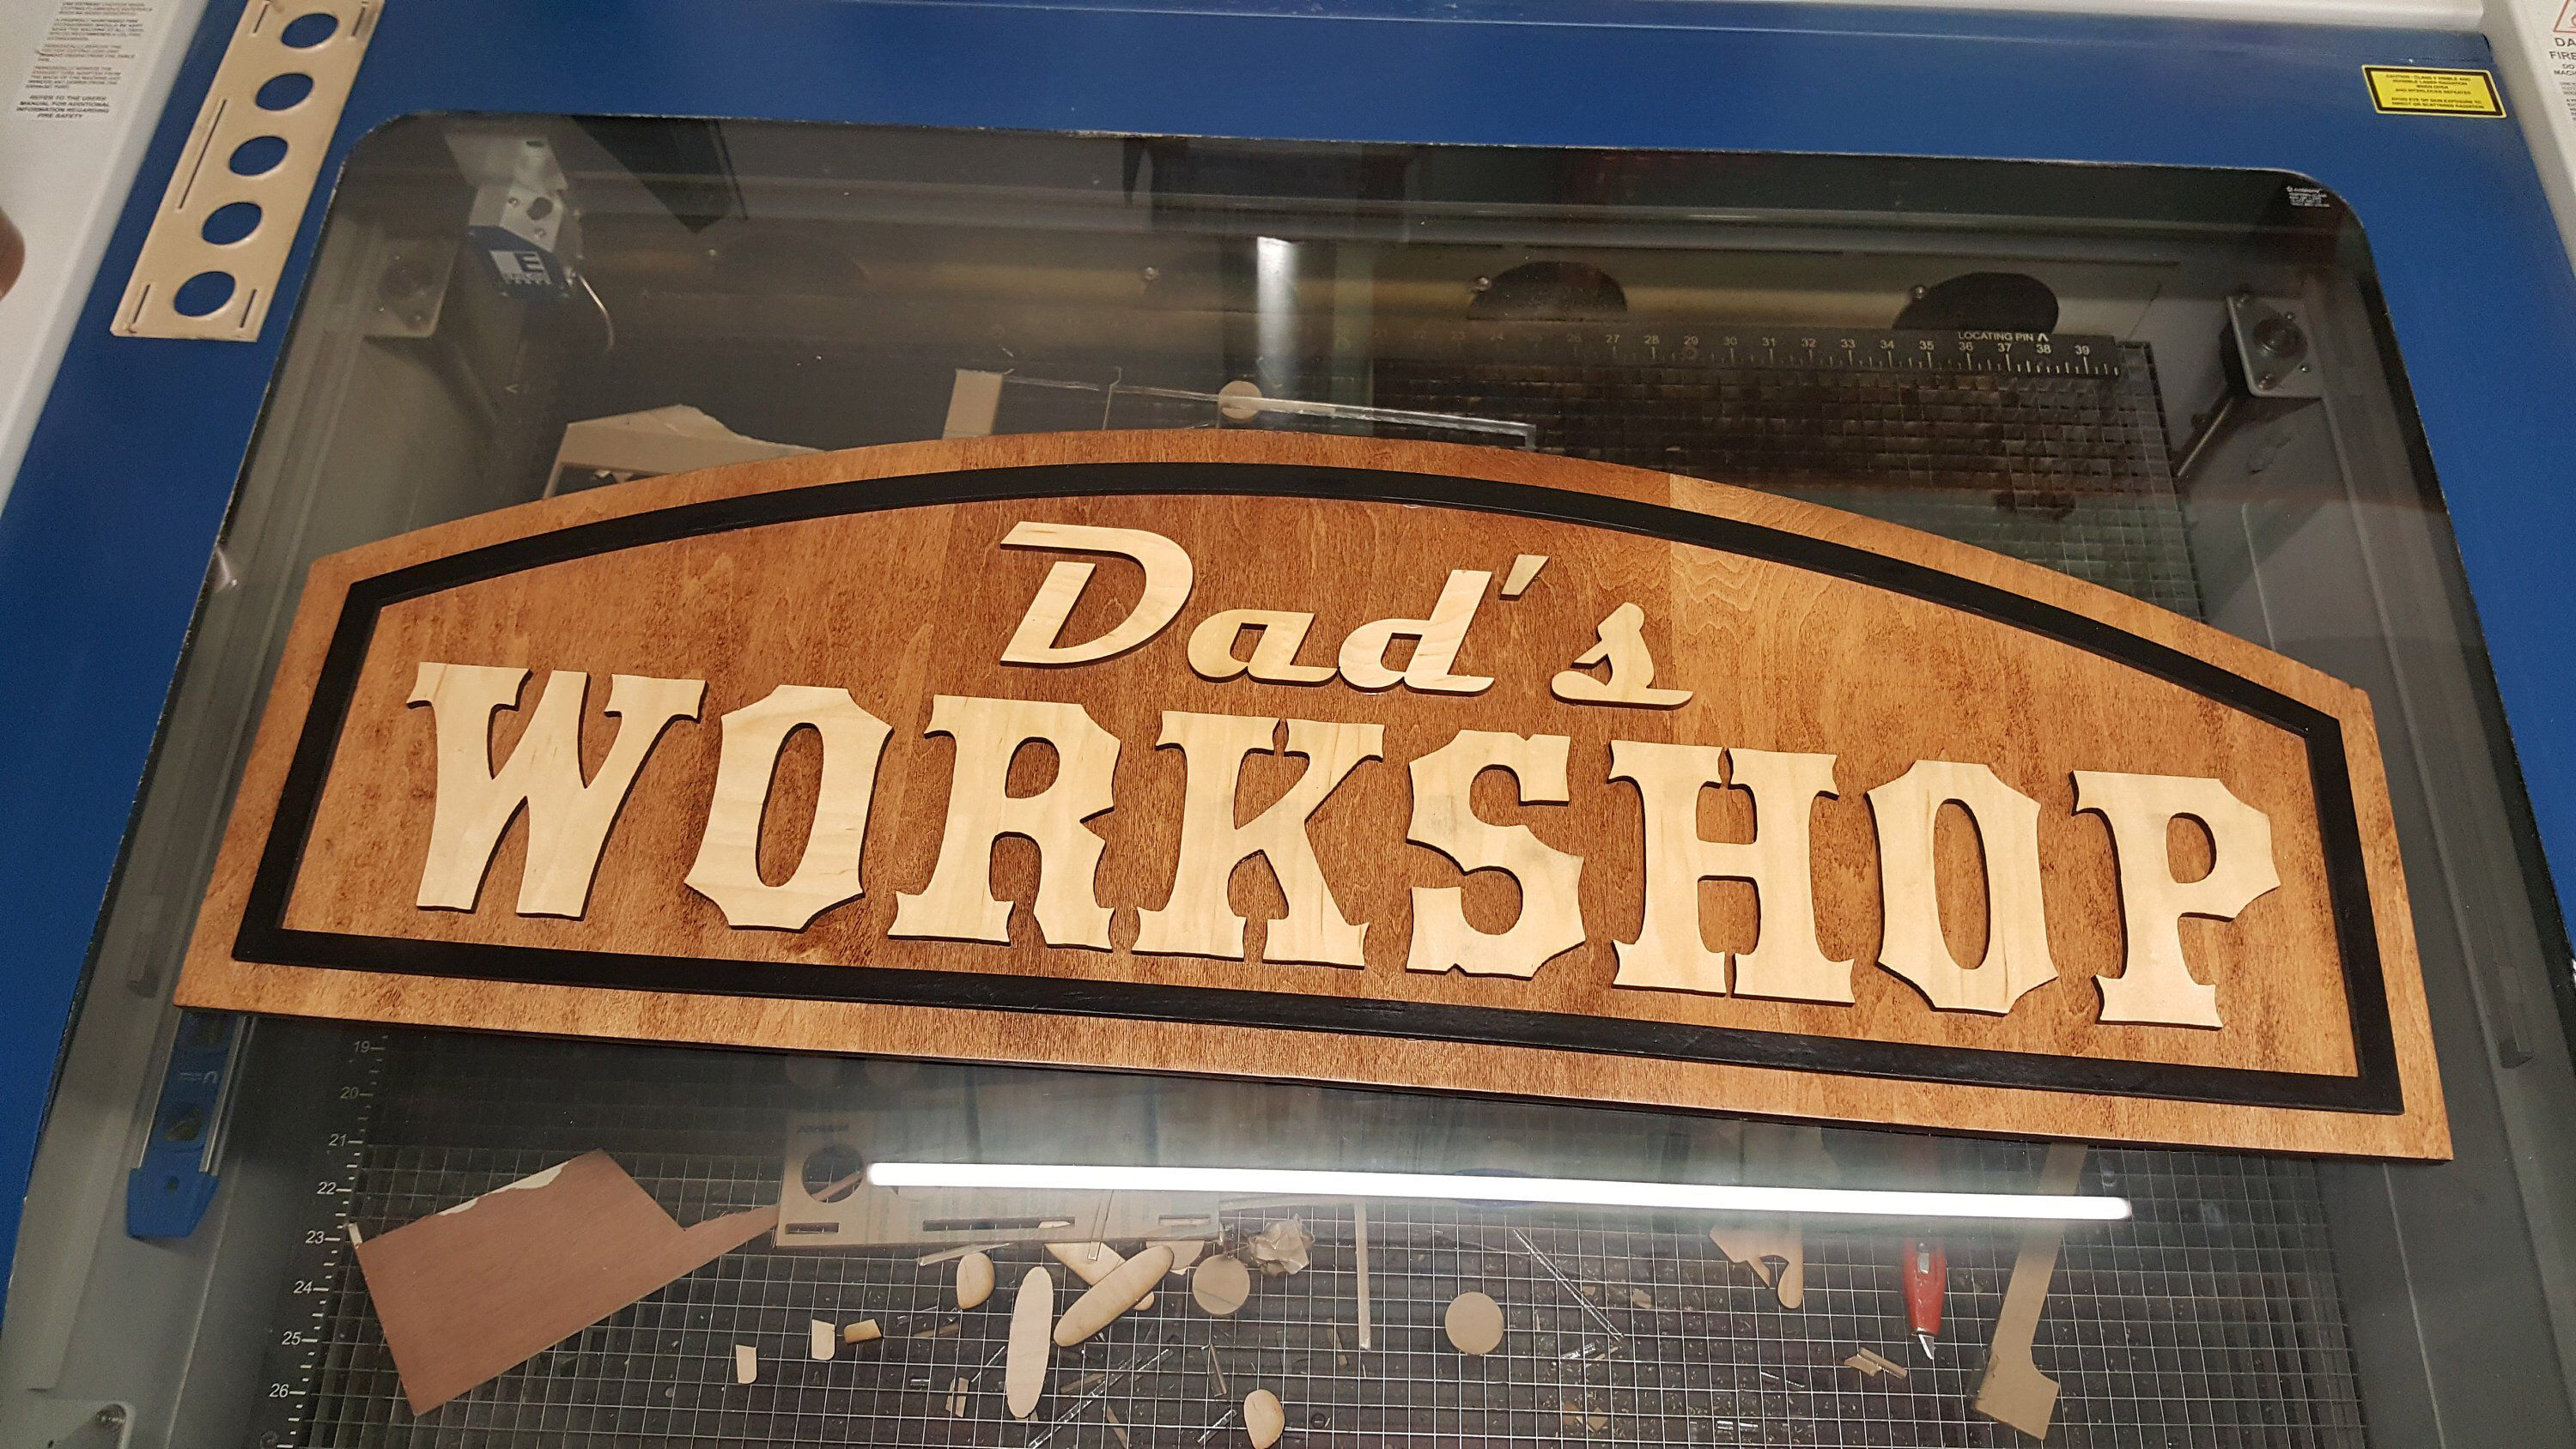 Pop/'s Shop Handyman/'s Tools Metal Door or Wall Hanger for Shop; Perfect for Dads or Grandfathers